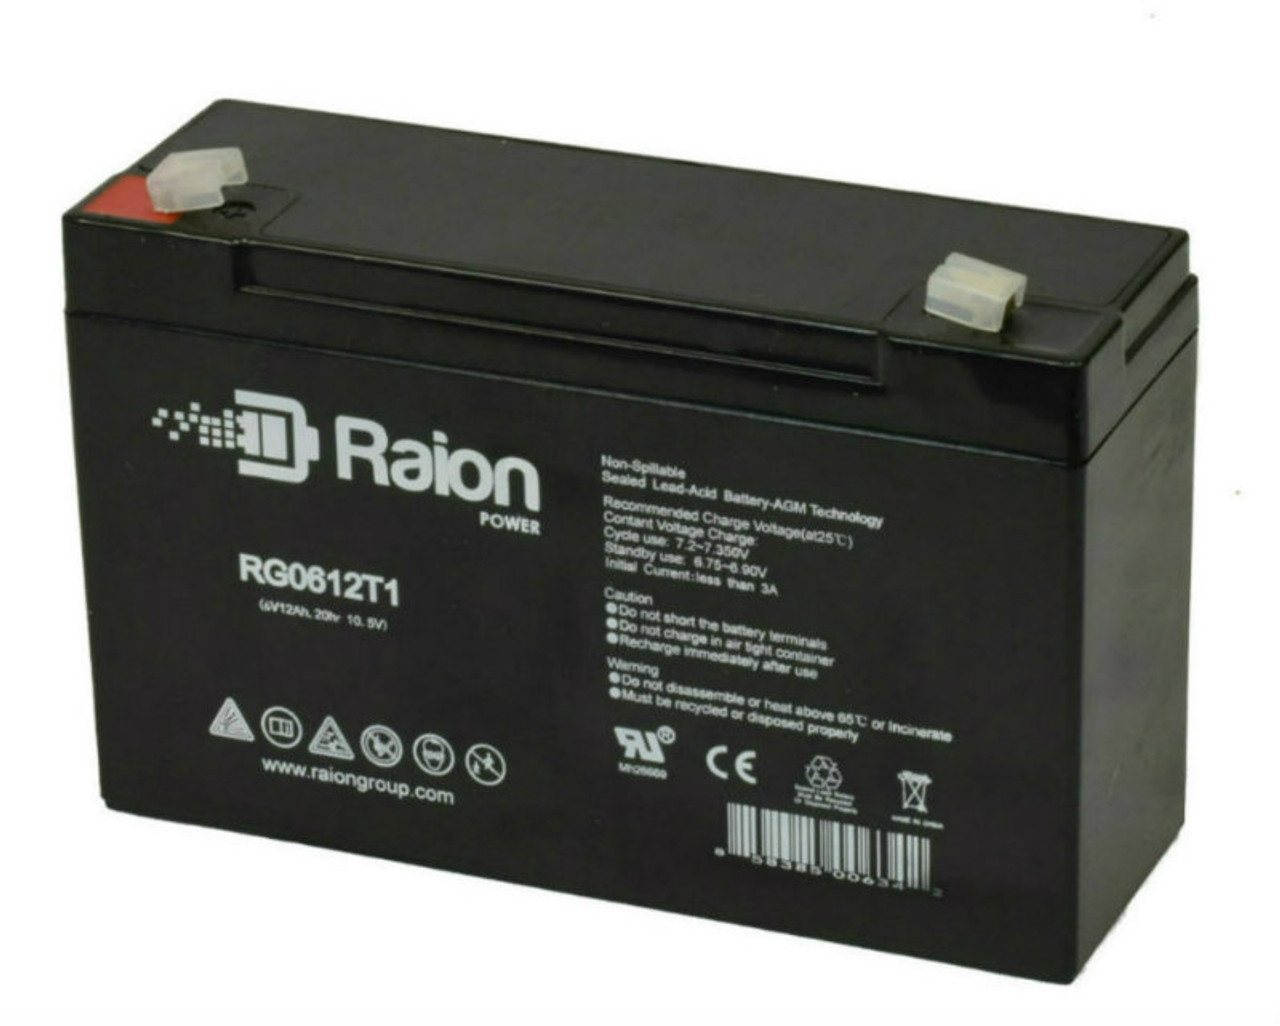 Raion Power RG06120T1 Replacement Battery Pack for Tork 460 emergency light